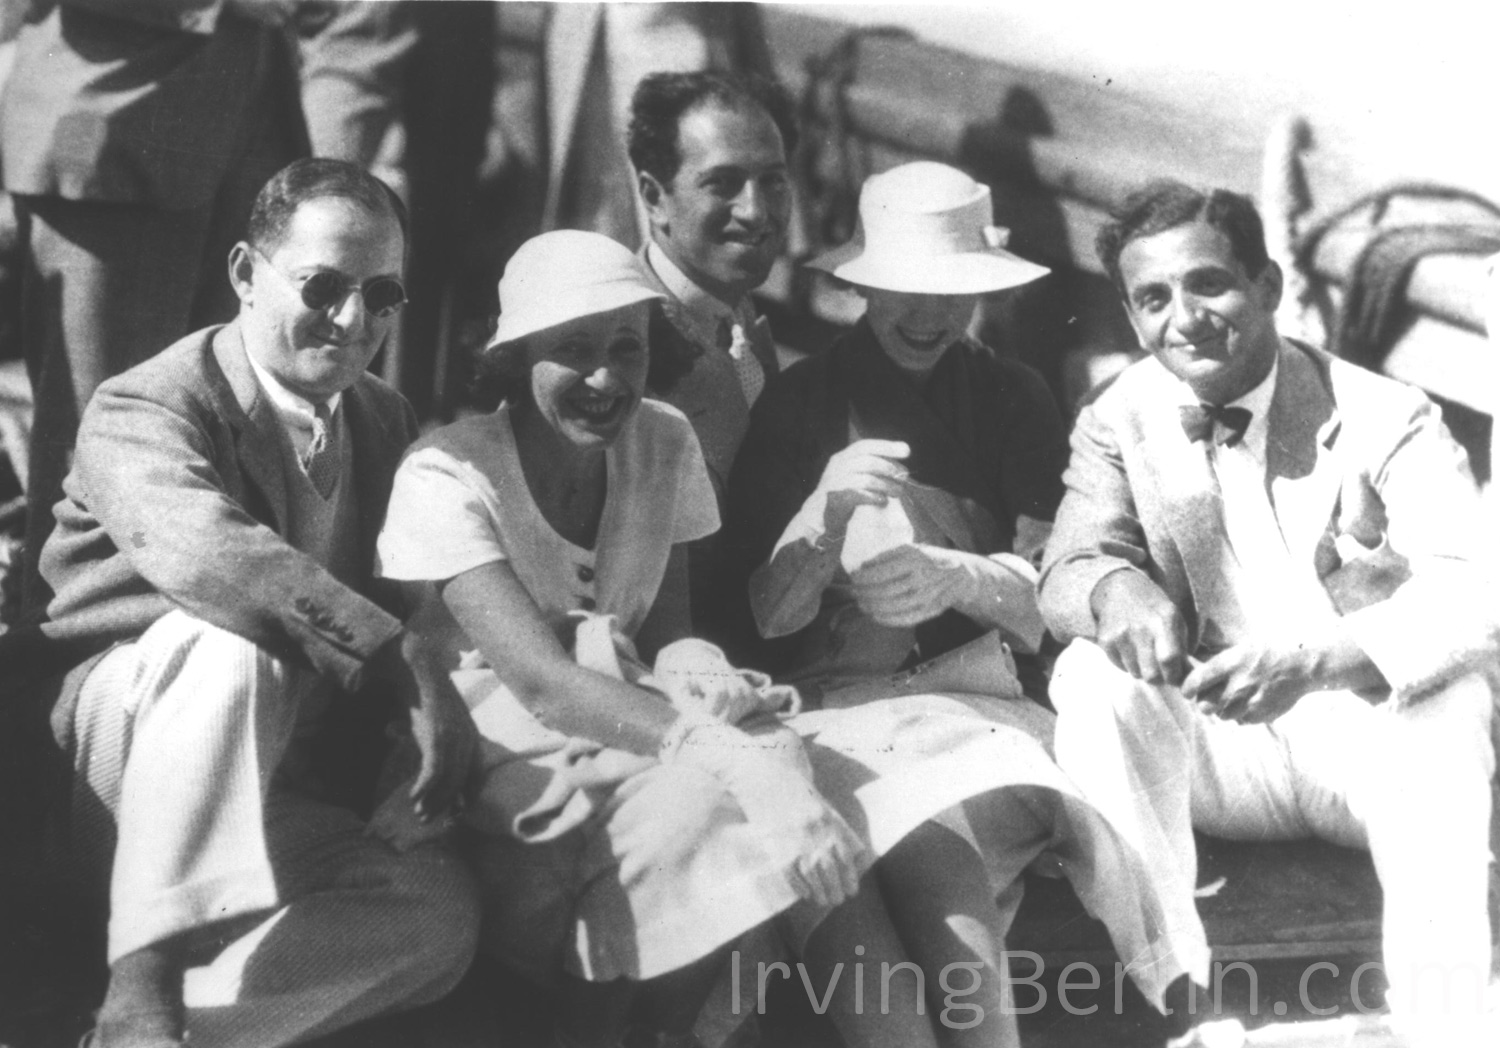 Ira, Leonore and George Gershwin with Ellin and Irving Berlin